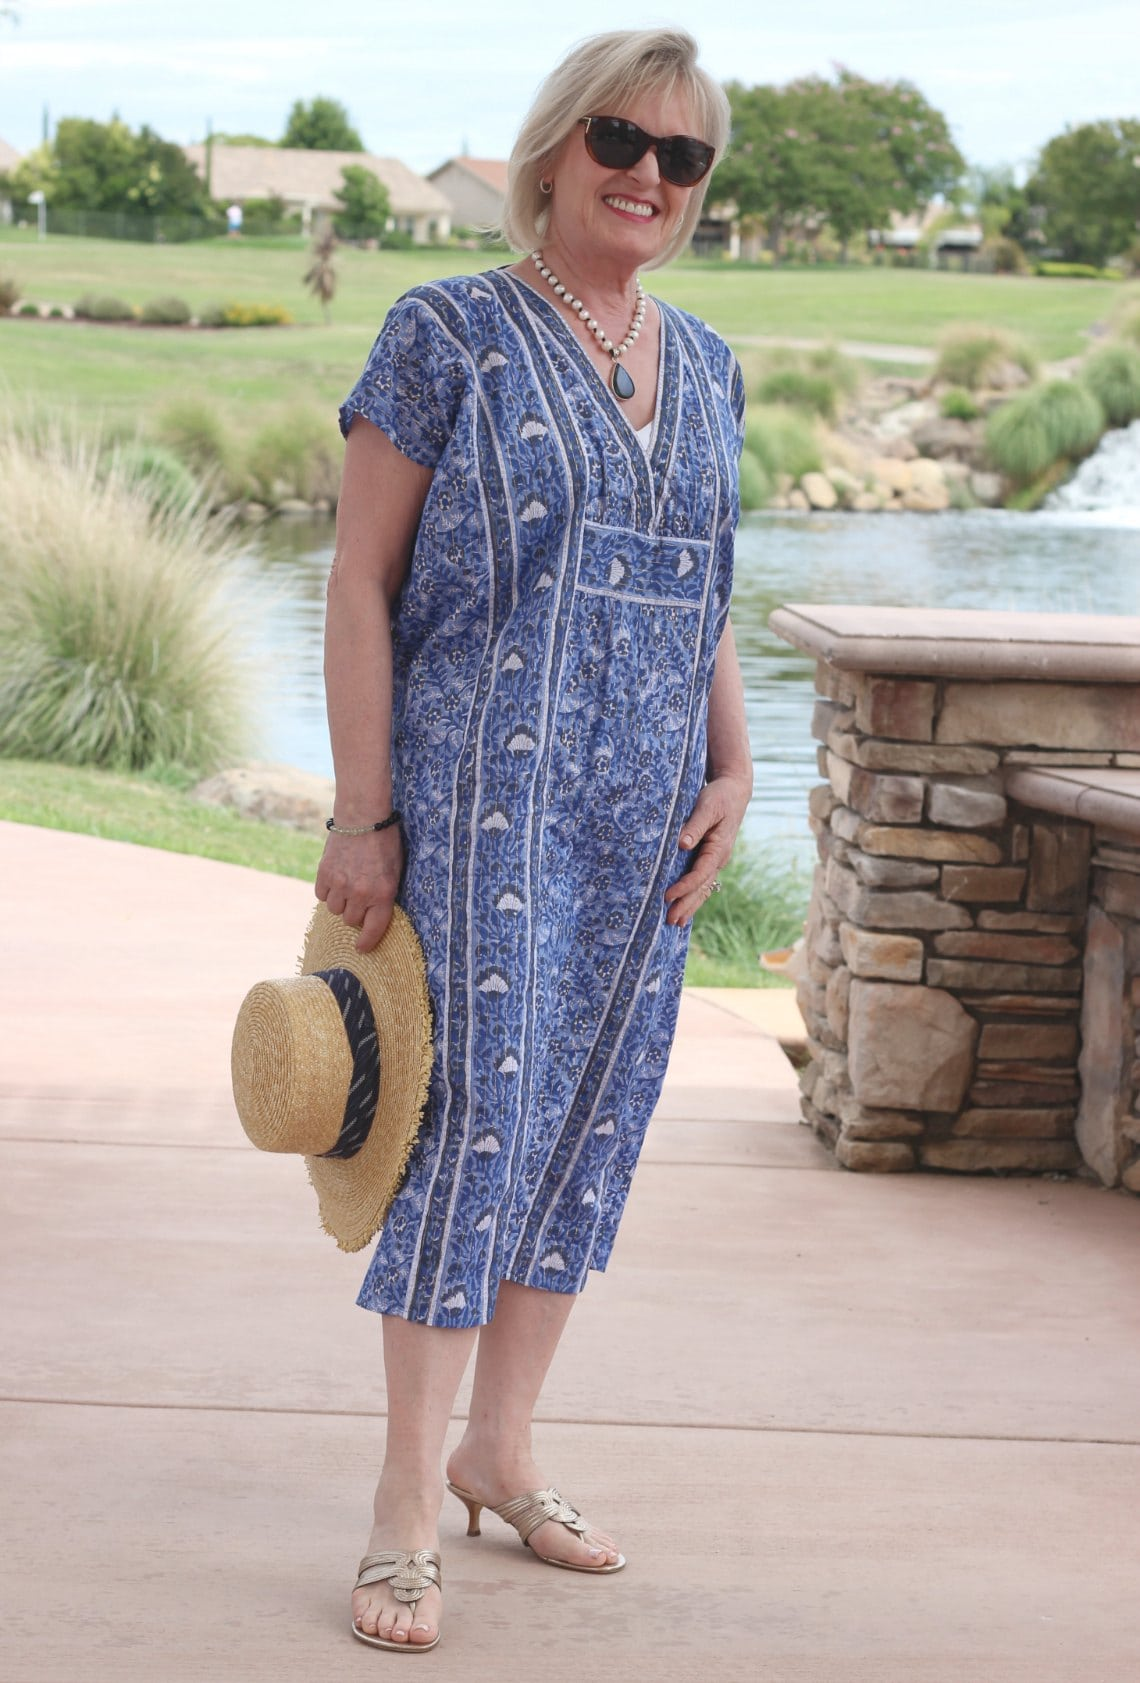 petite over 50 blogger jennifer connolly wearing blue caftan